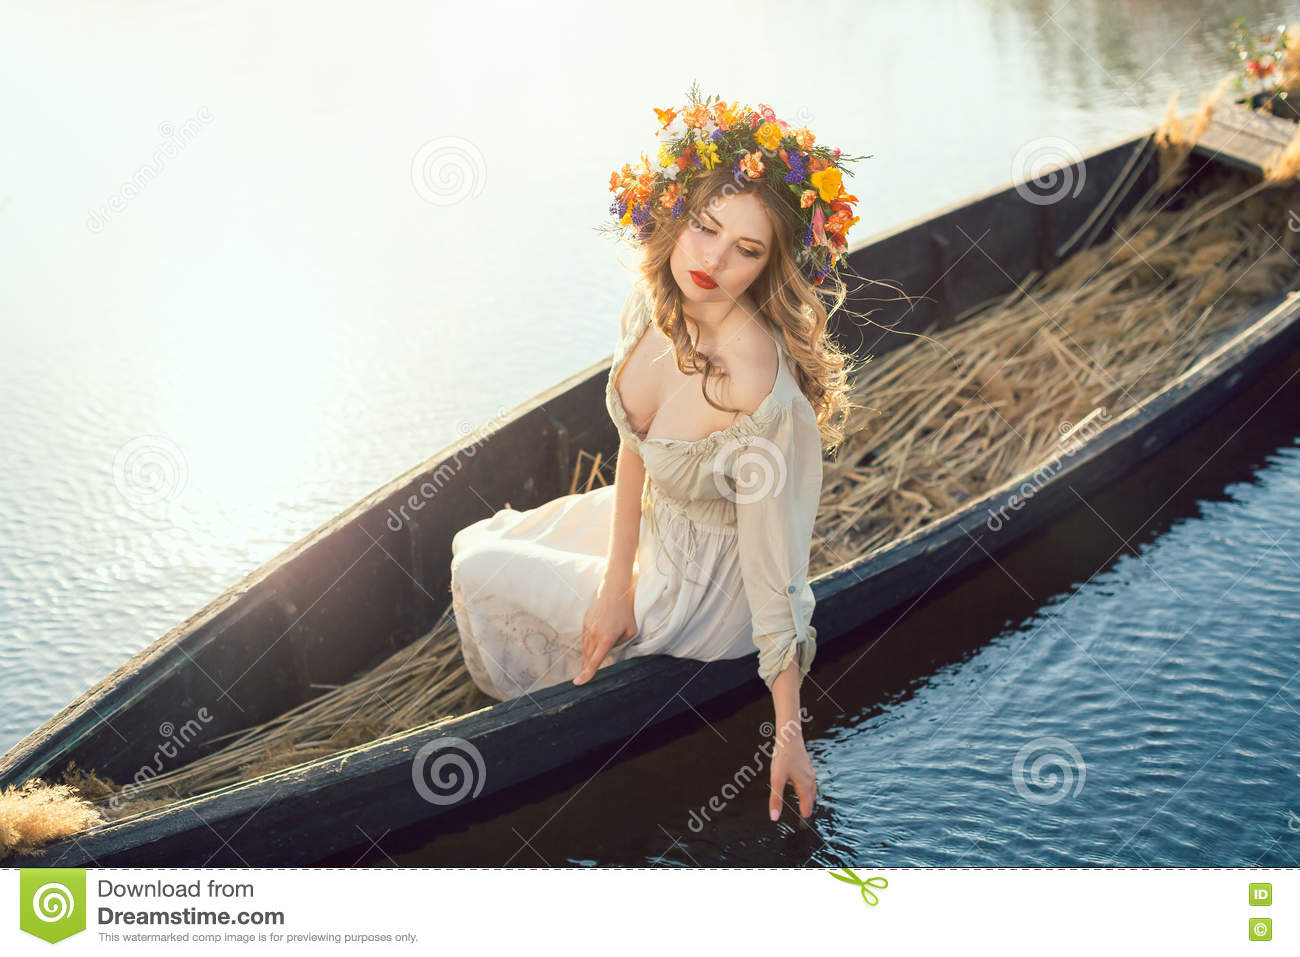 Fantasy Art Photo Of A Beautiful Lady Lying In Boat Stock